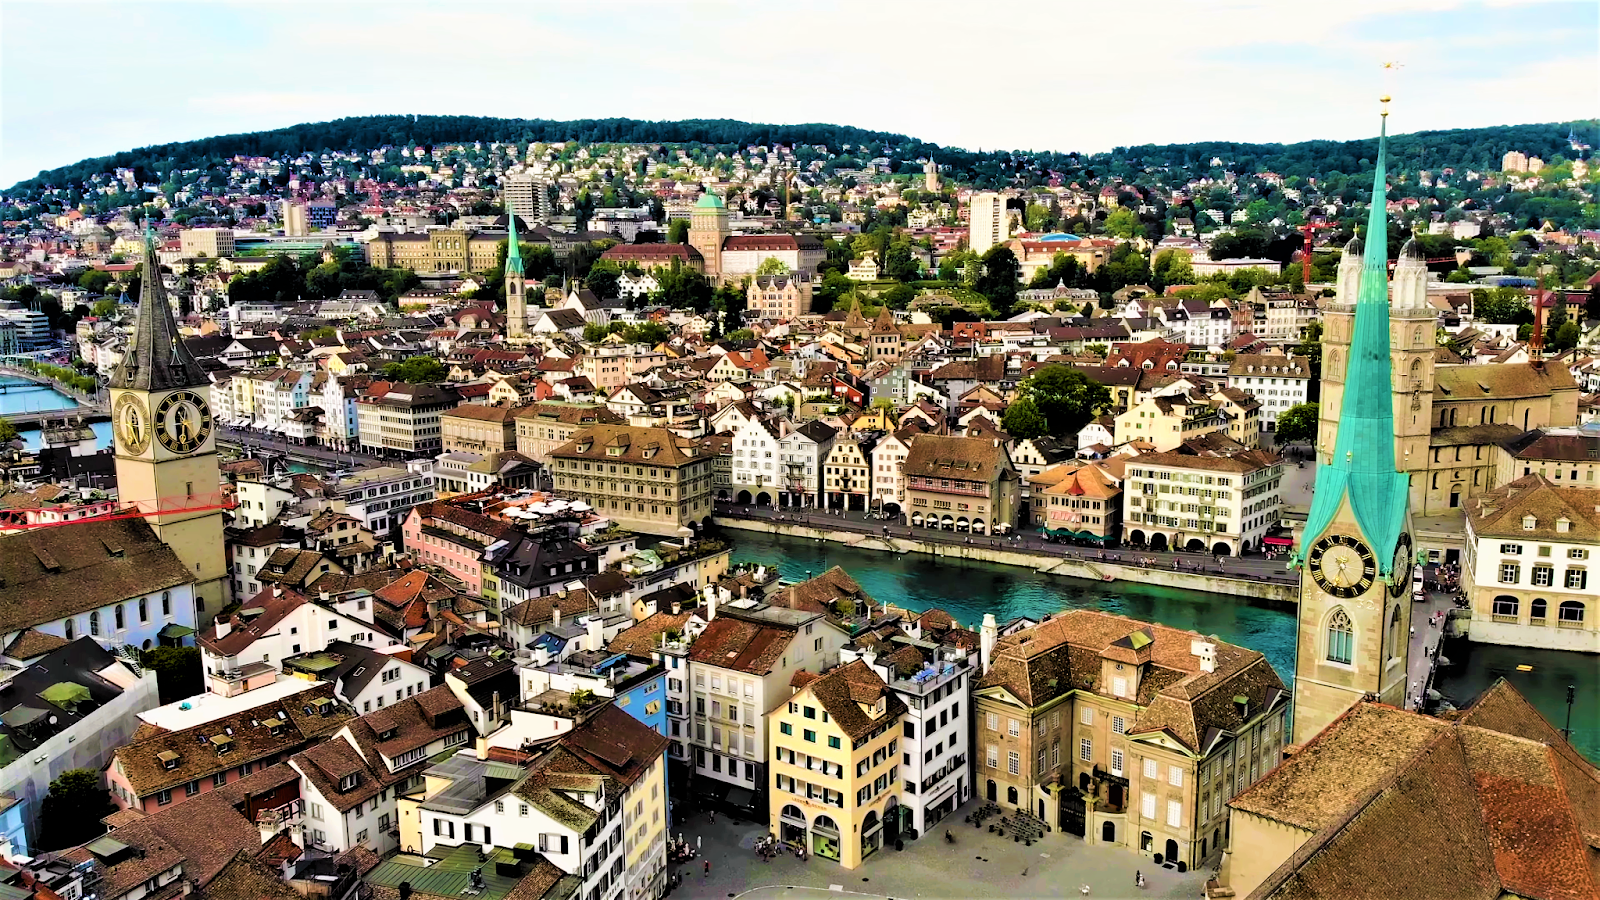 Zurich, 6th most sustainable city 2018